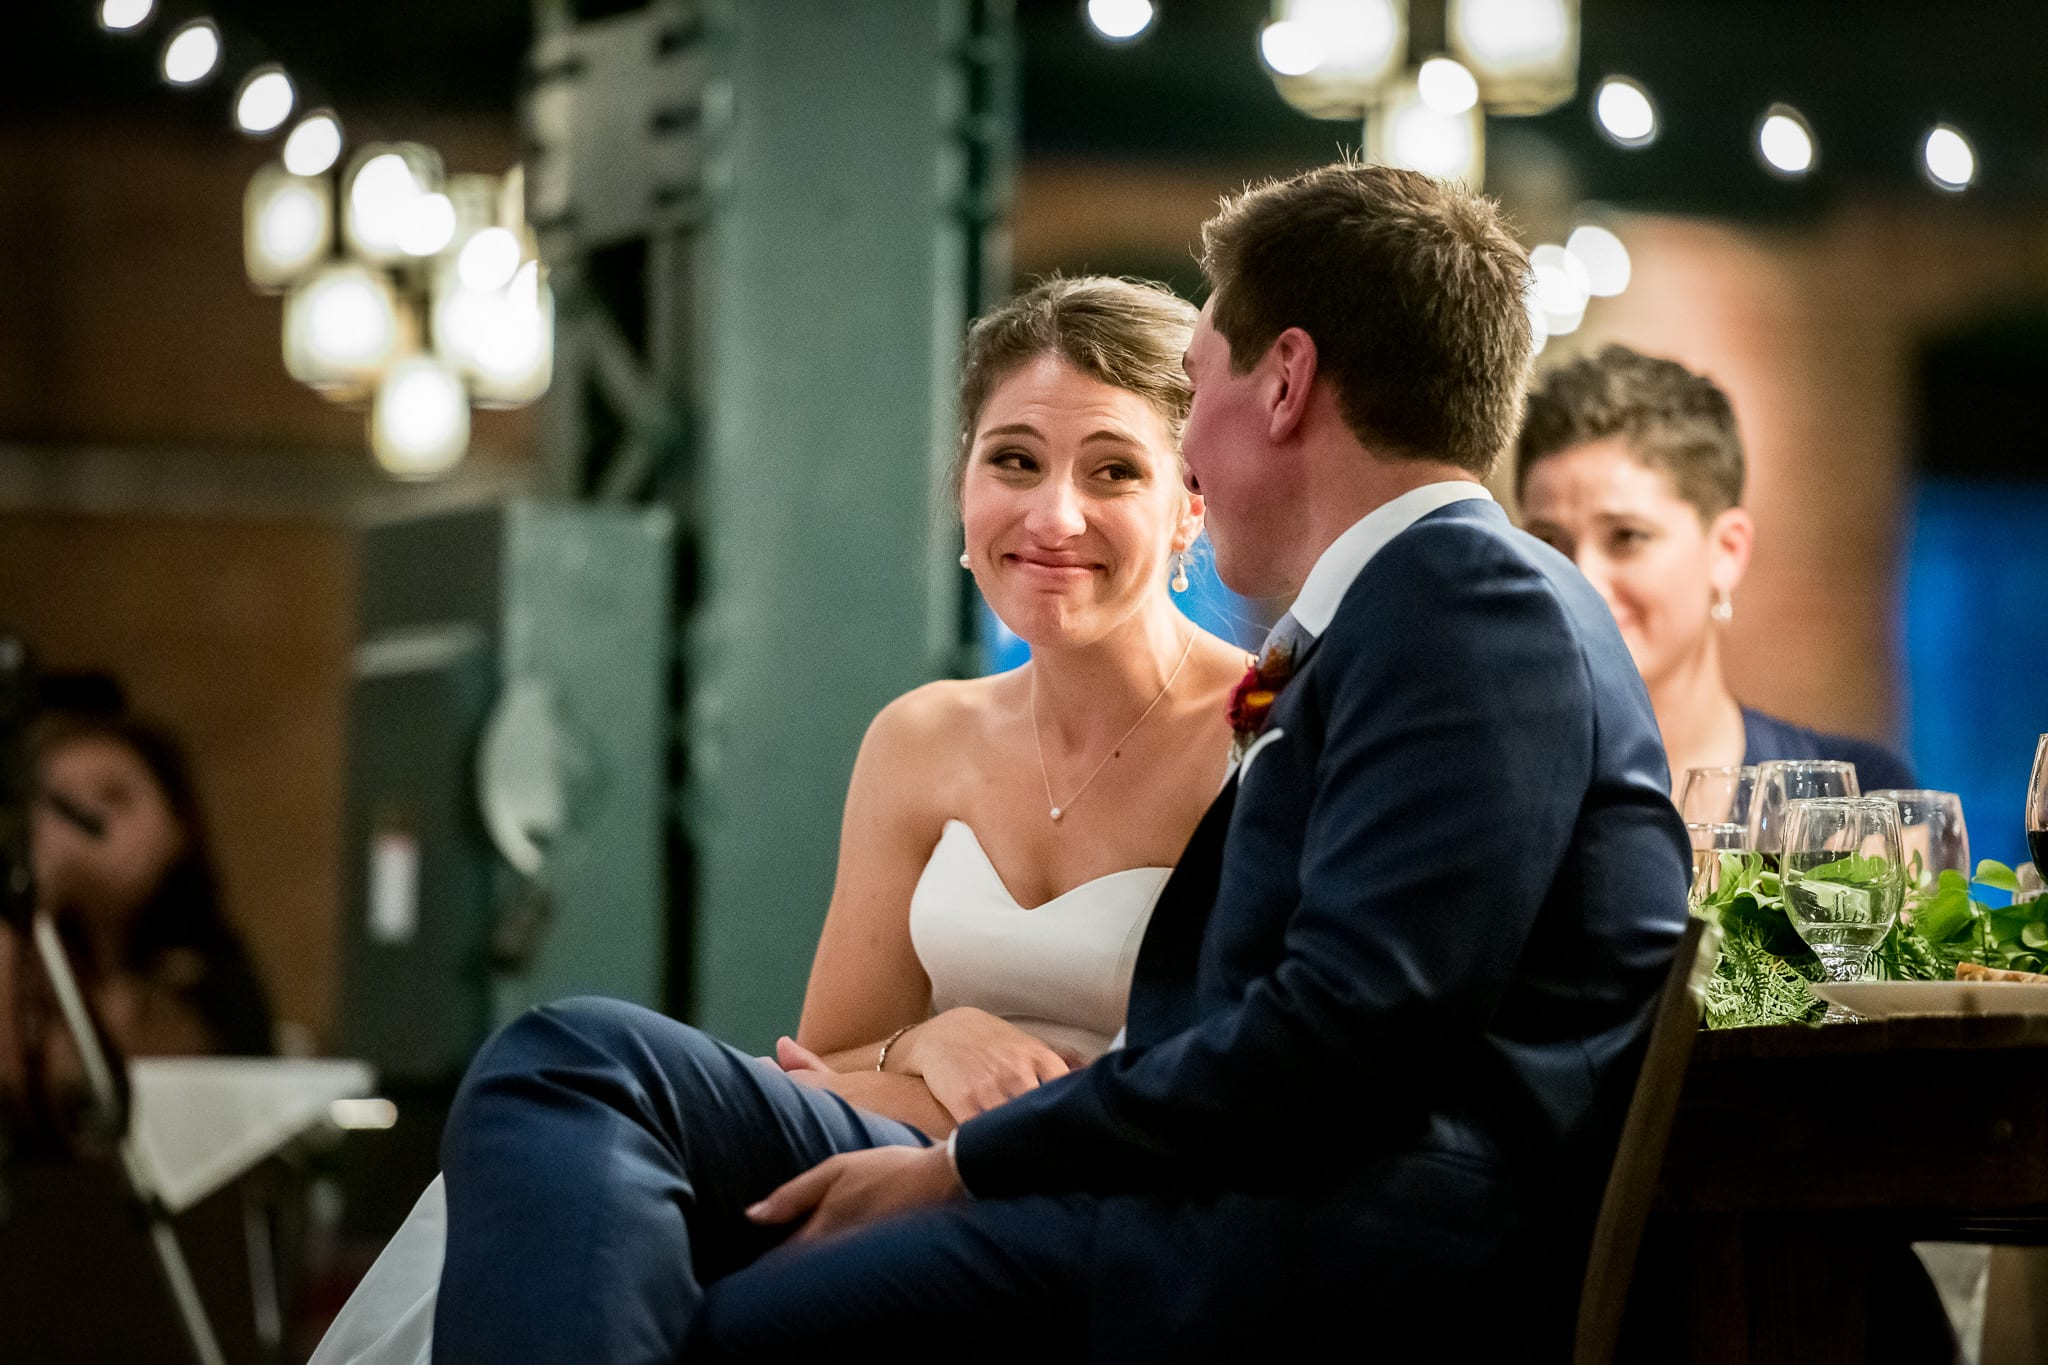 Bride looks at groom with tear filled eyes during their wedding reception inside the Nicollet Island Pavilion